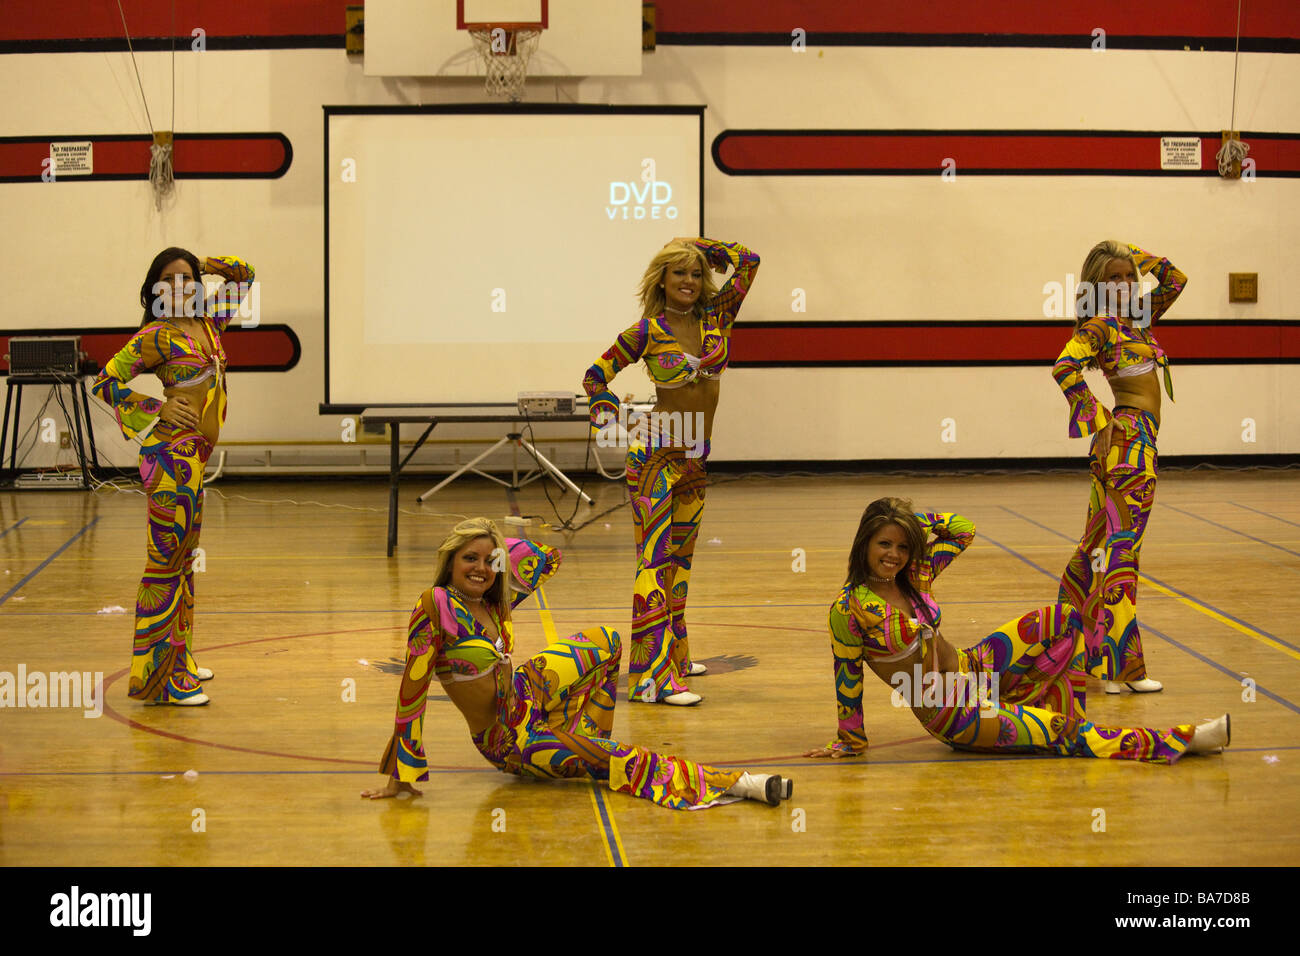 Indianapolis Colts cheerleaders performing their Armed Forces Entertainment variety show at Cairo American College, - Stock Image